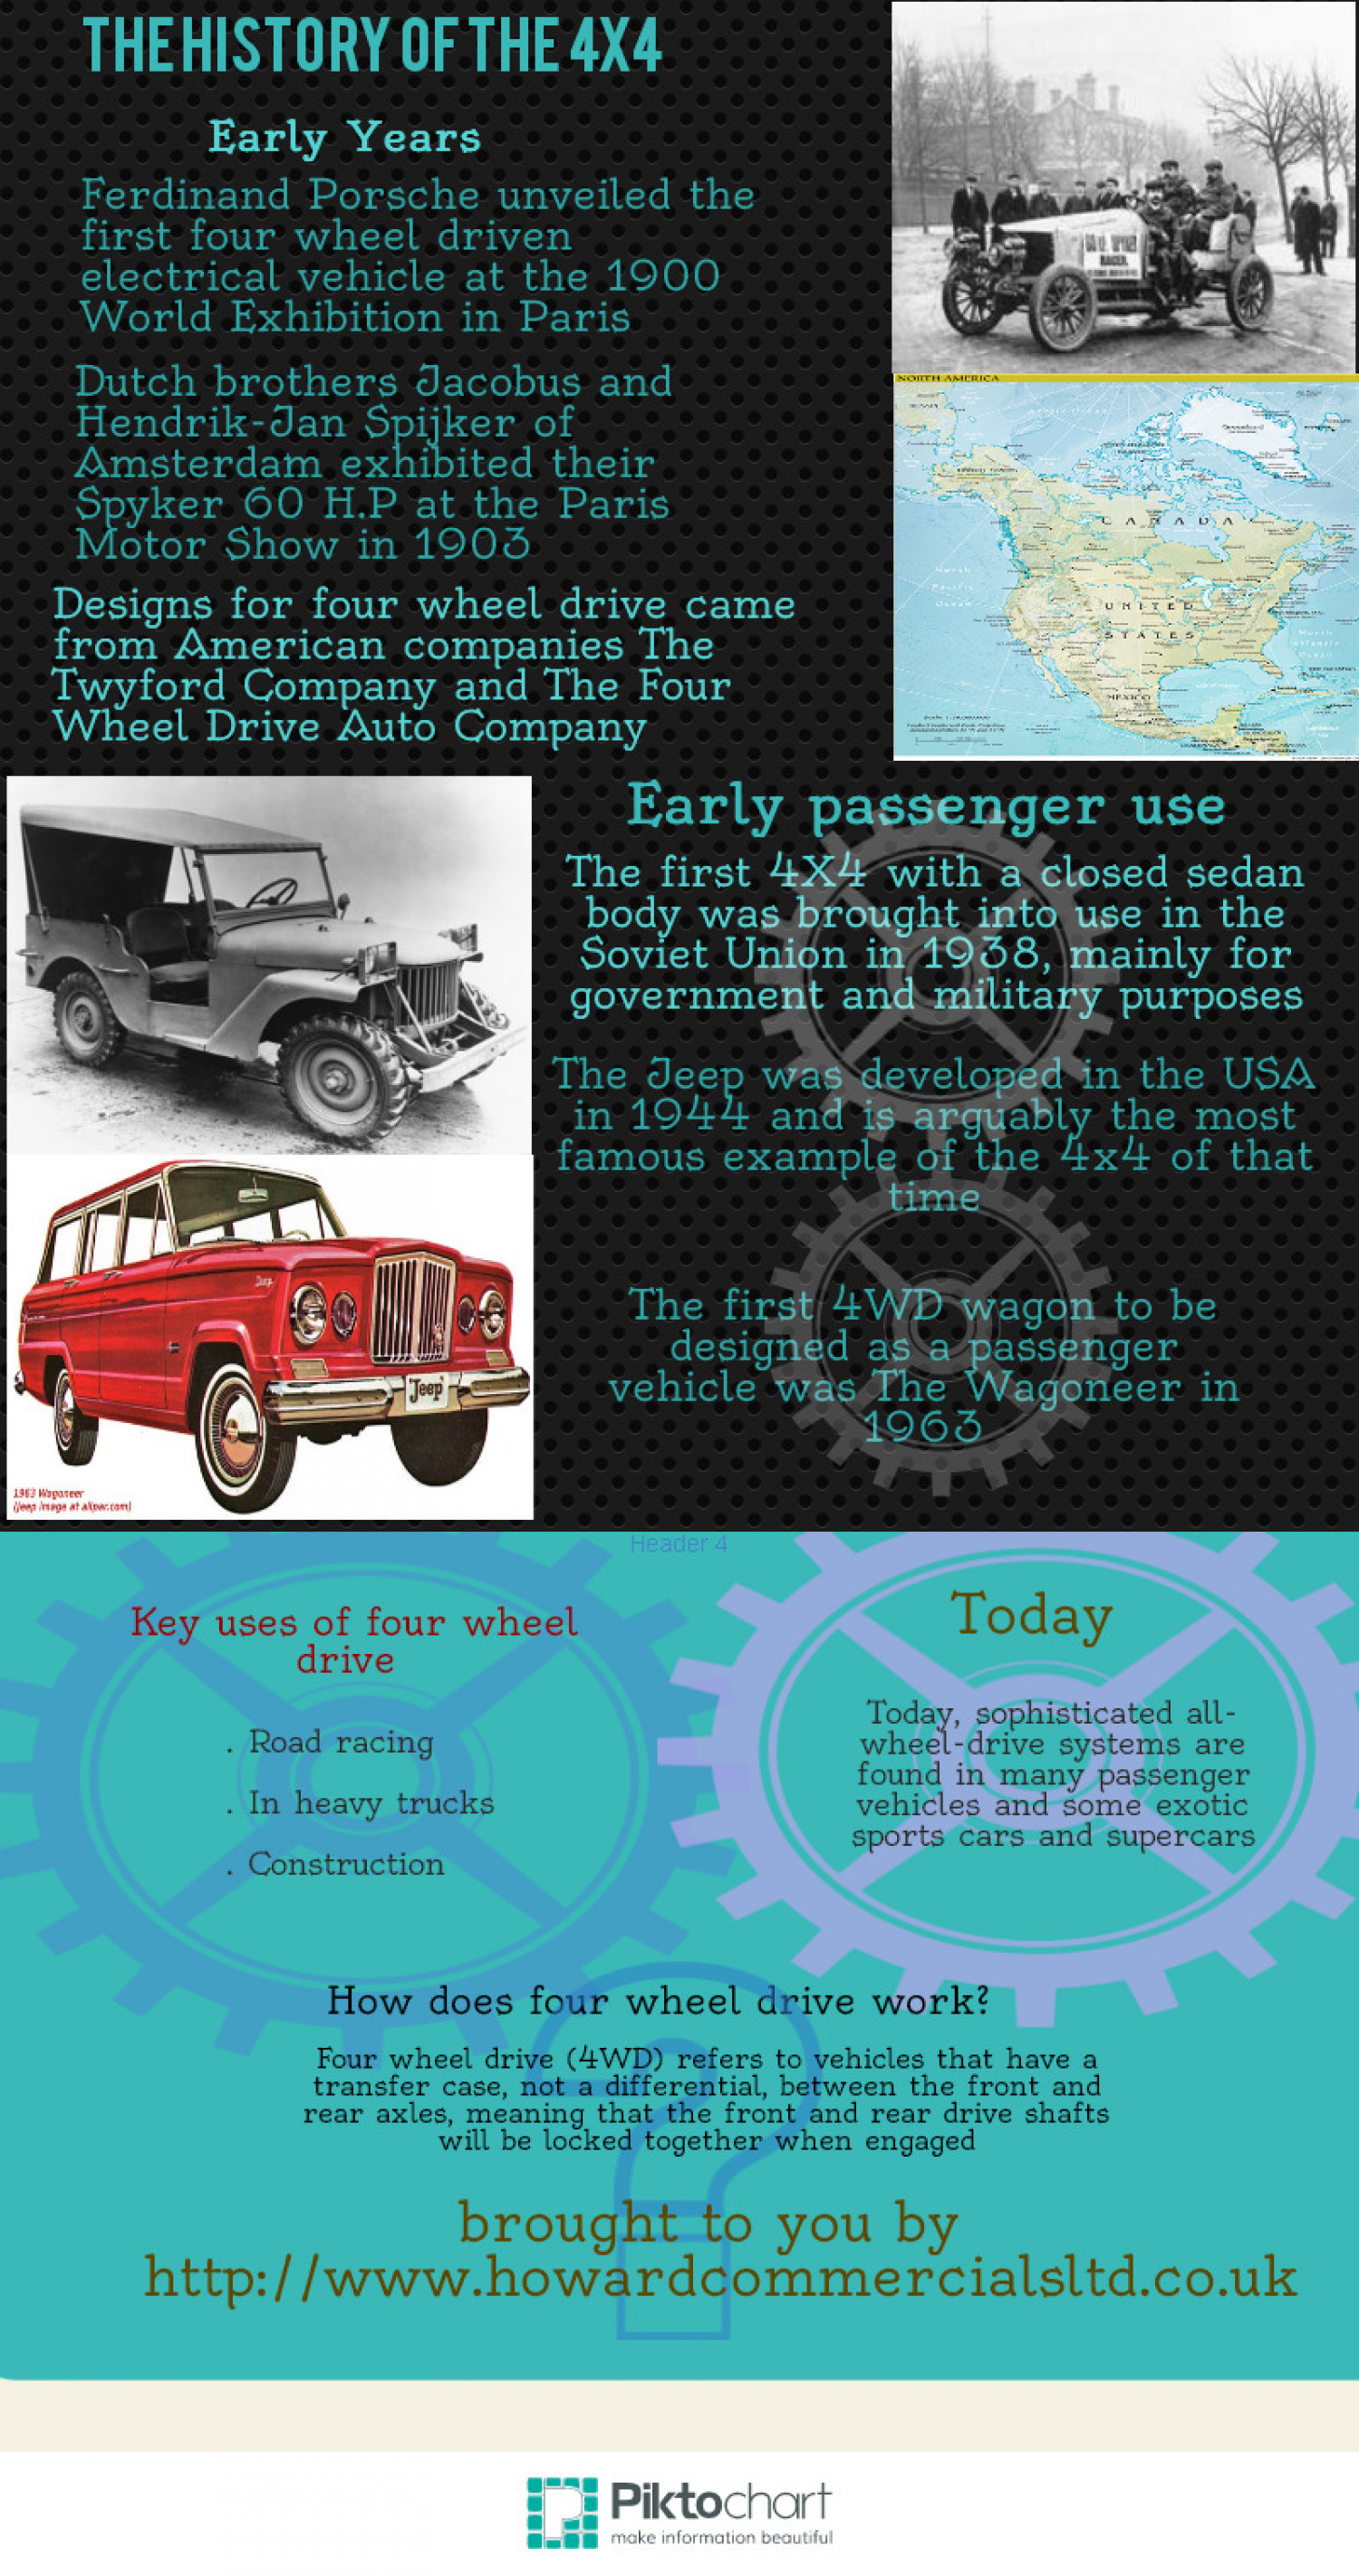 The History of the 4X4 Infographic